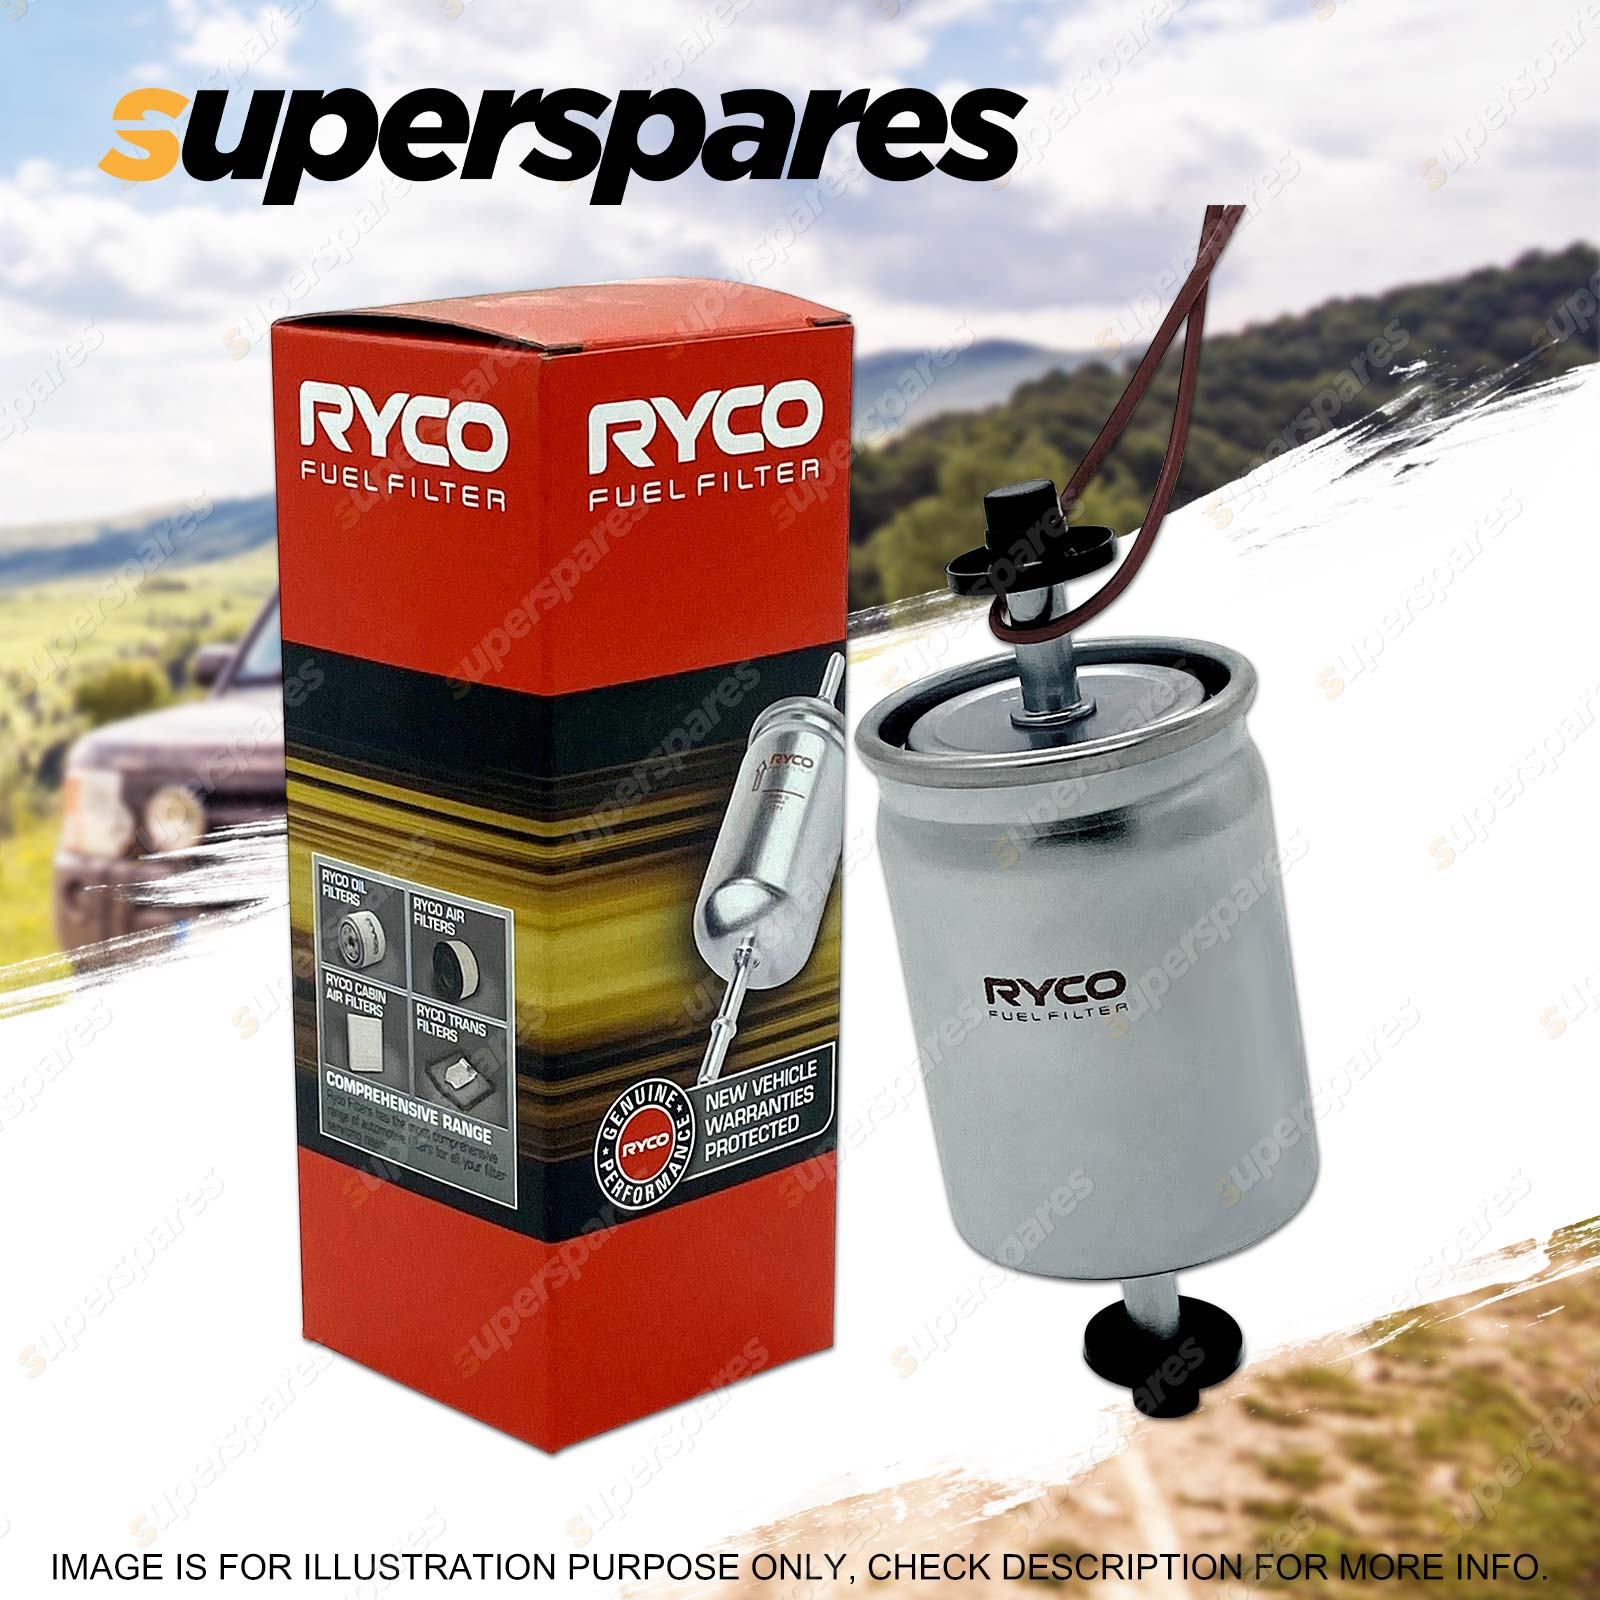 hight resolution of ryco fuel filter for toyota mr2 previa tarago spacia supra townace toyoace